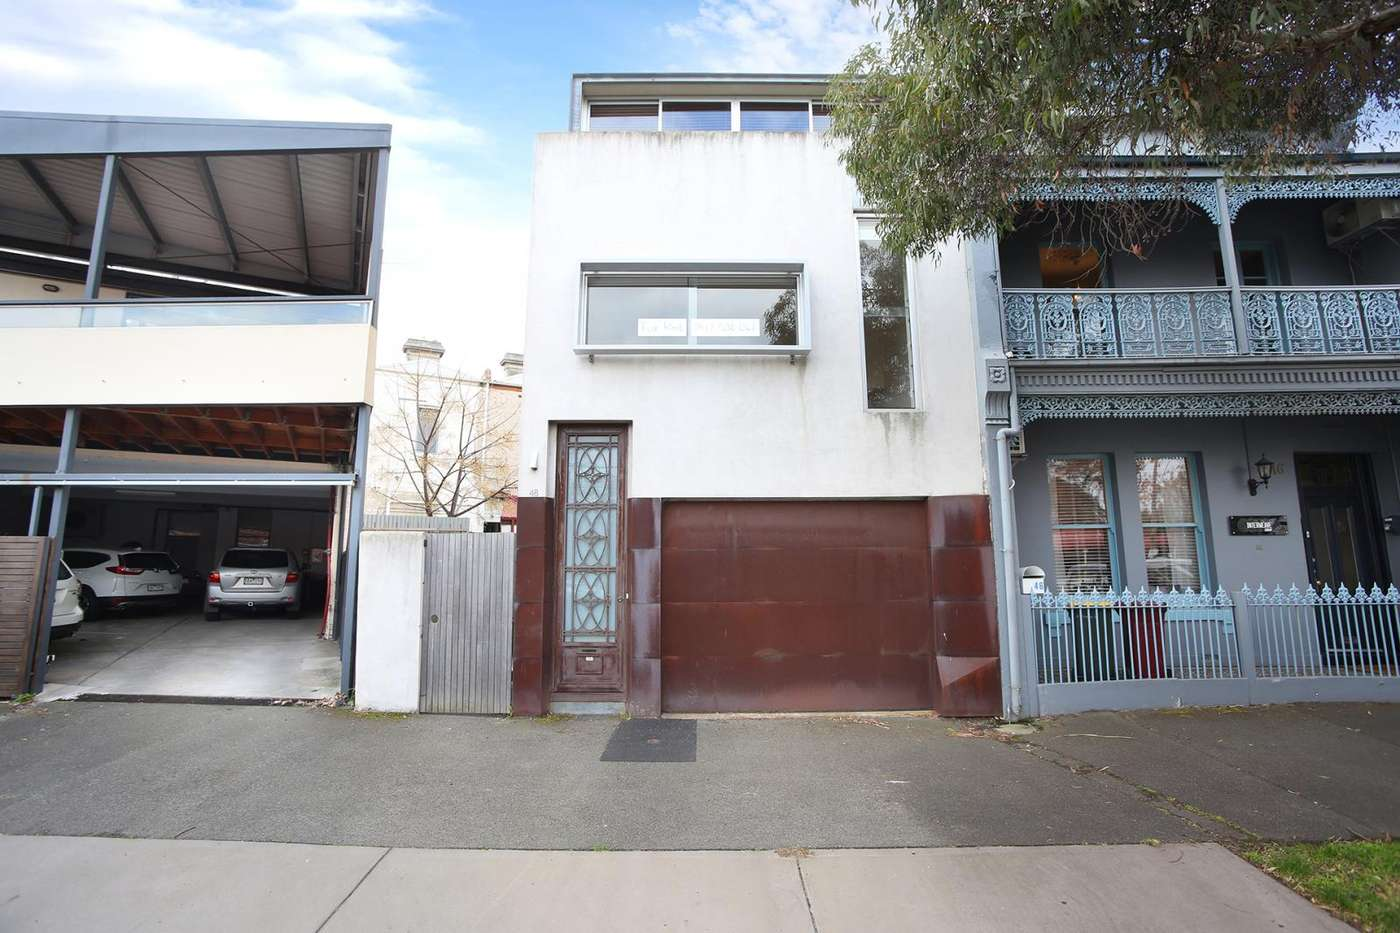 Main view of Homely apartment listing, 48 Dundas Place, Albert Park, VIC 3206